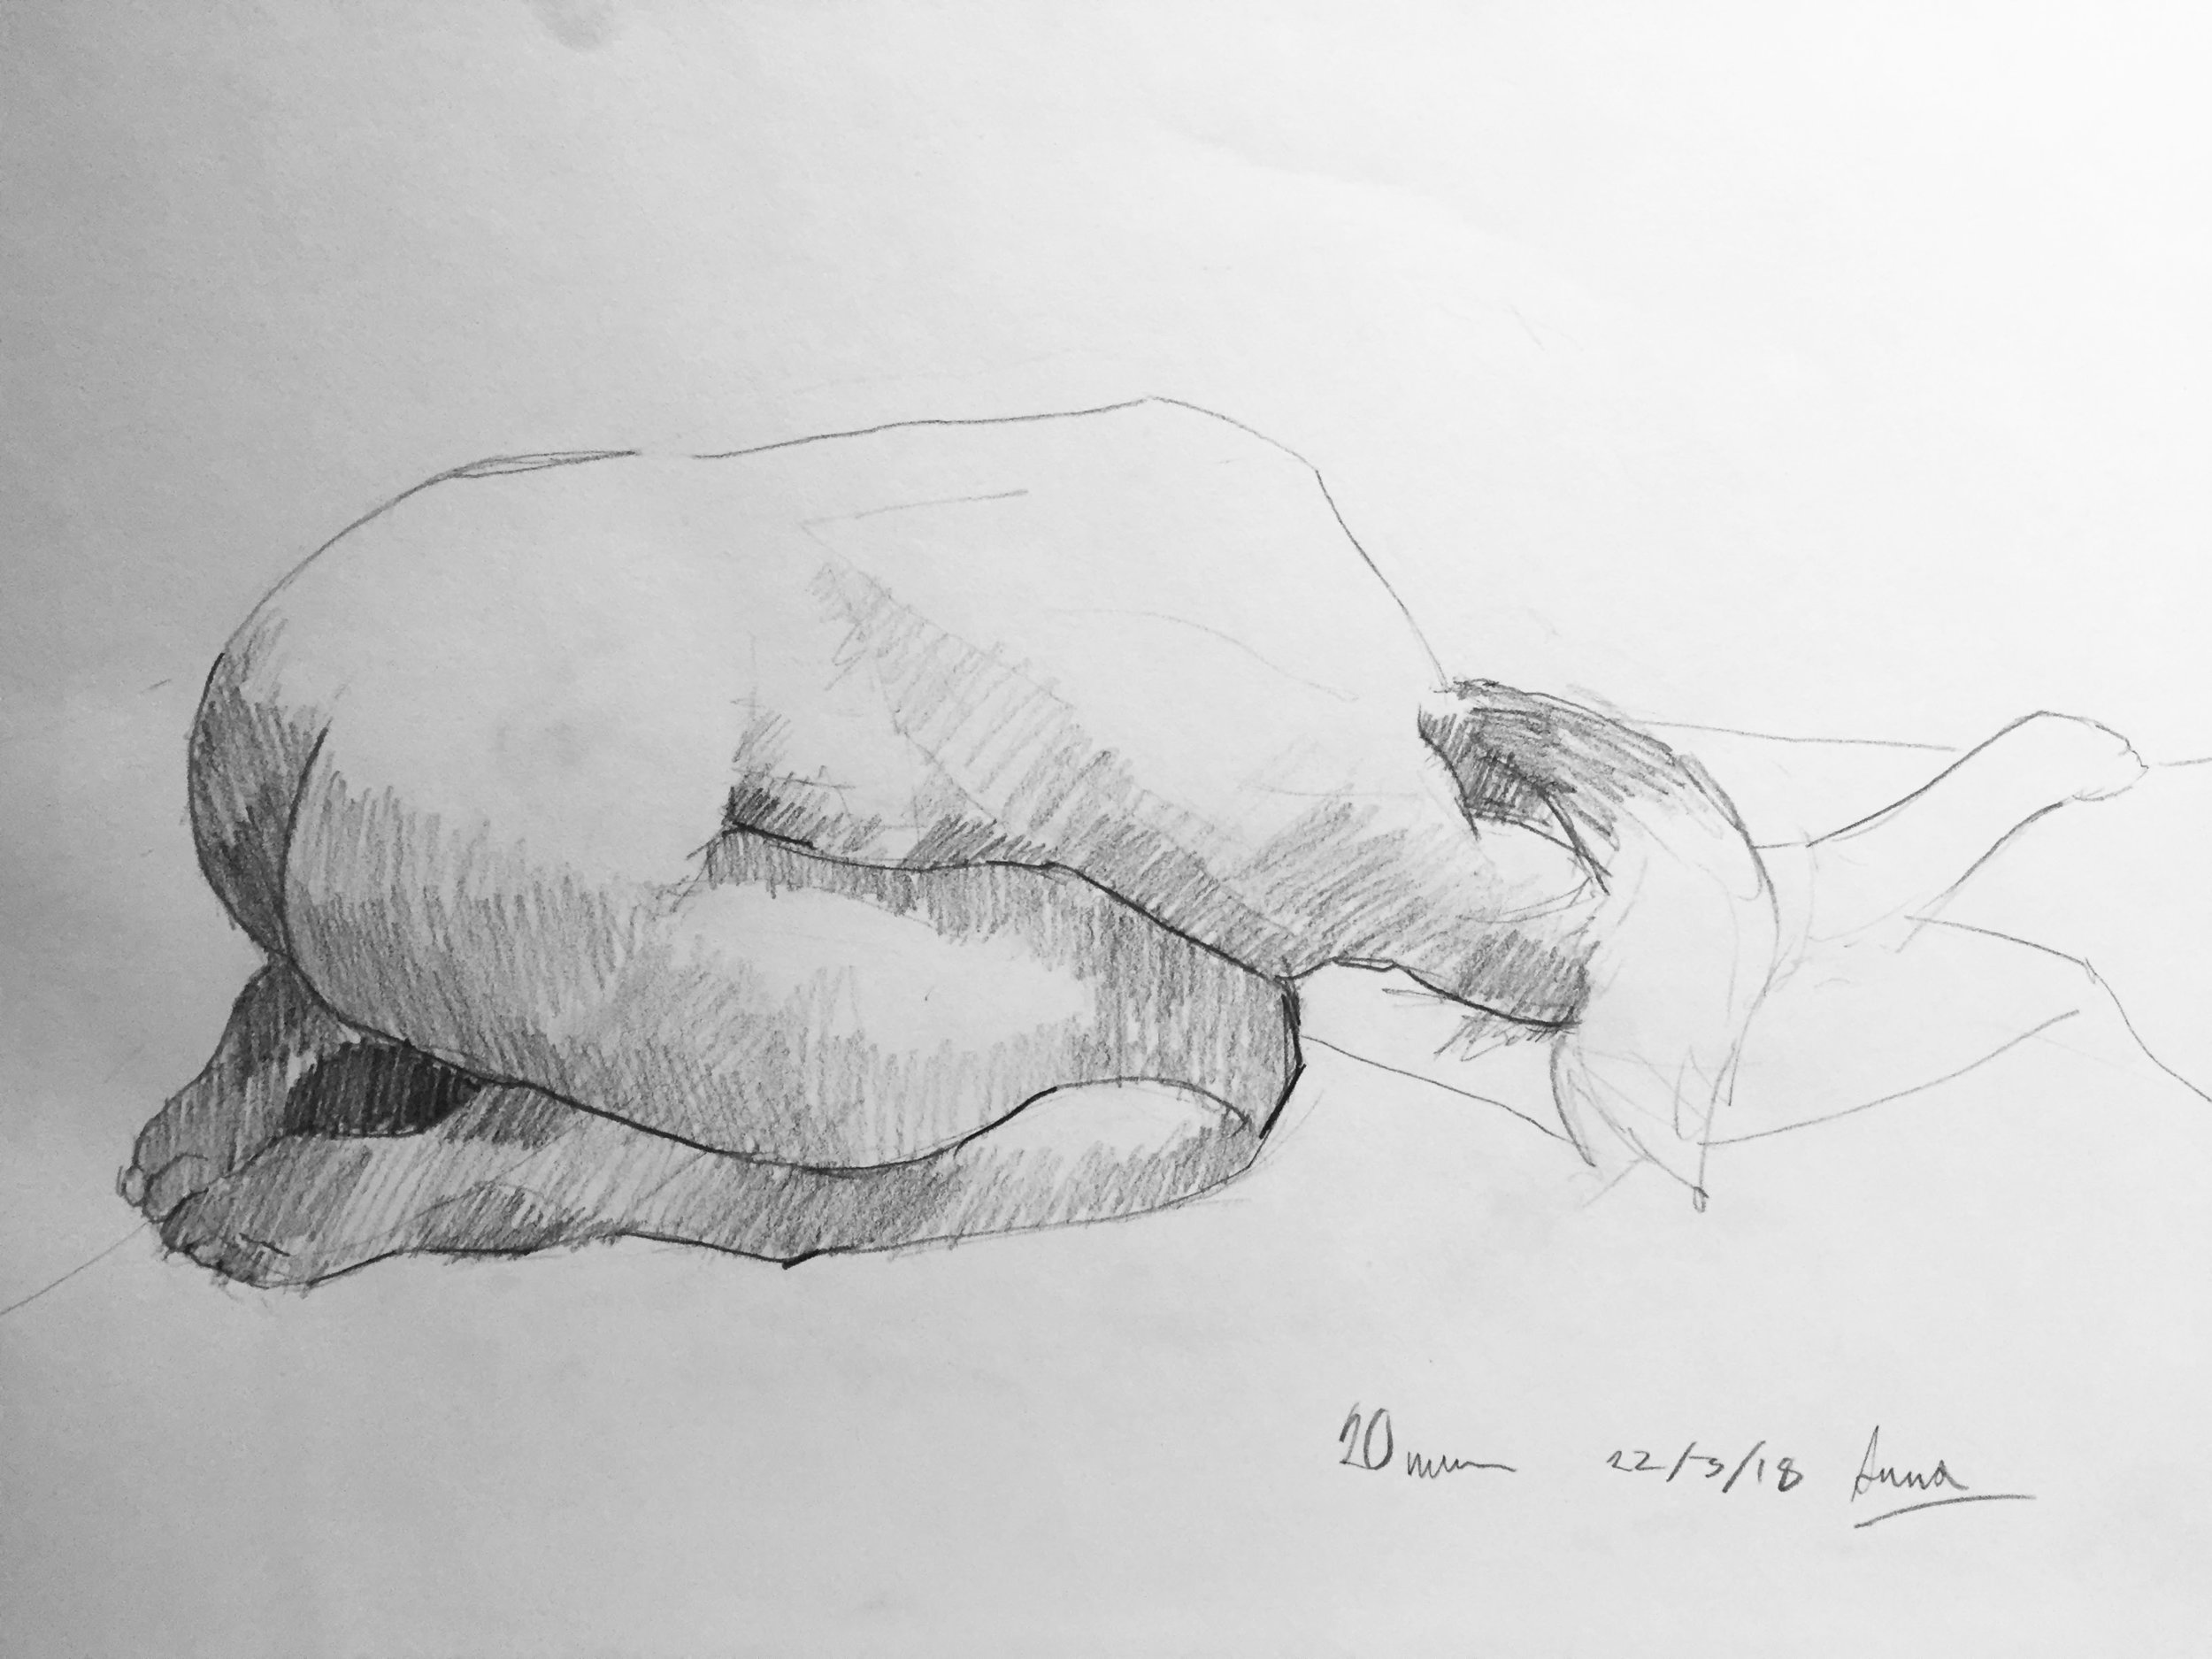 Life Drawing Sketch 2 Session 22/3/18